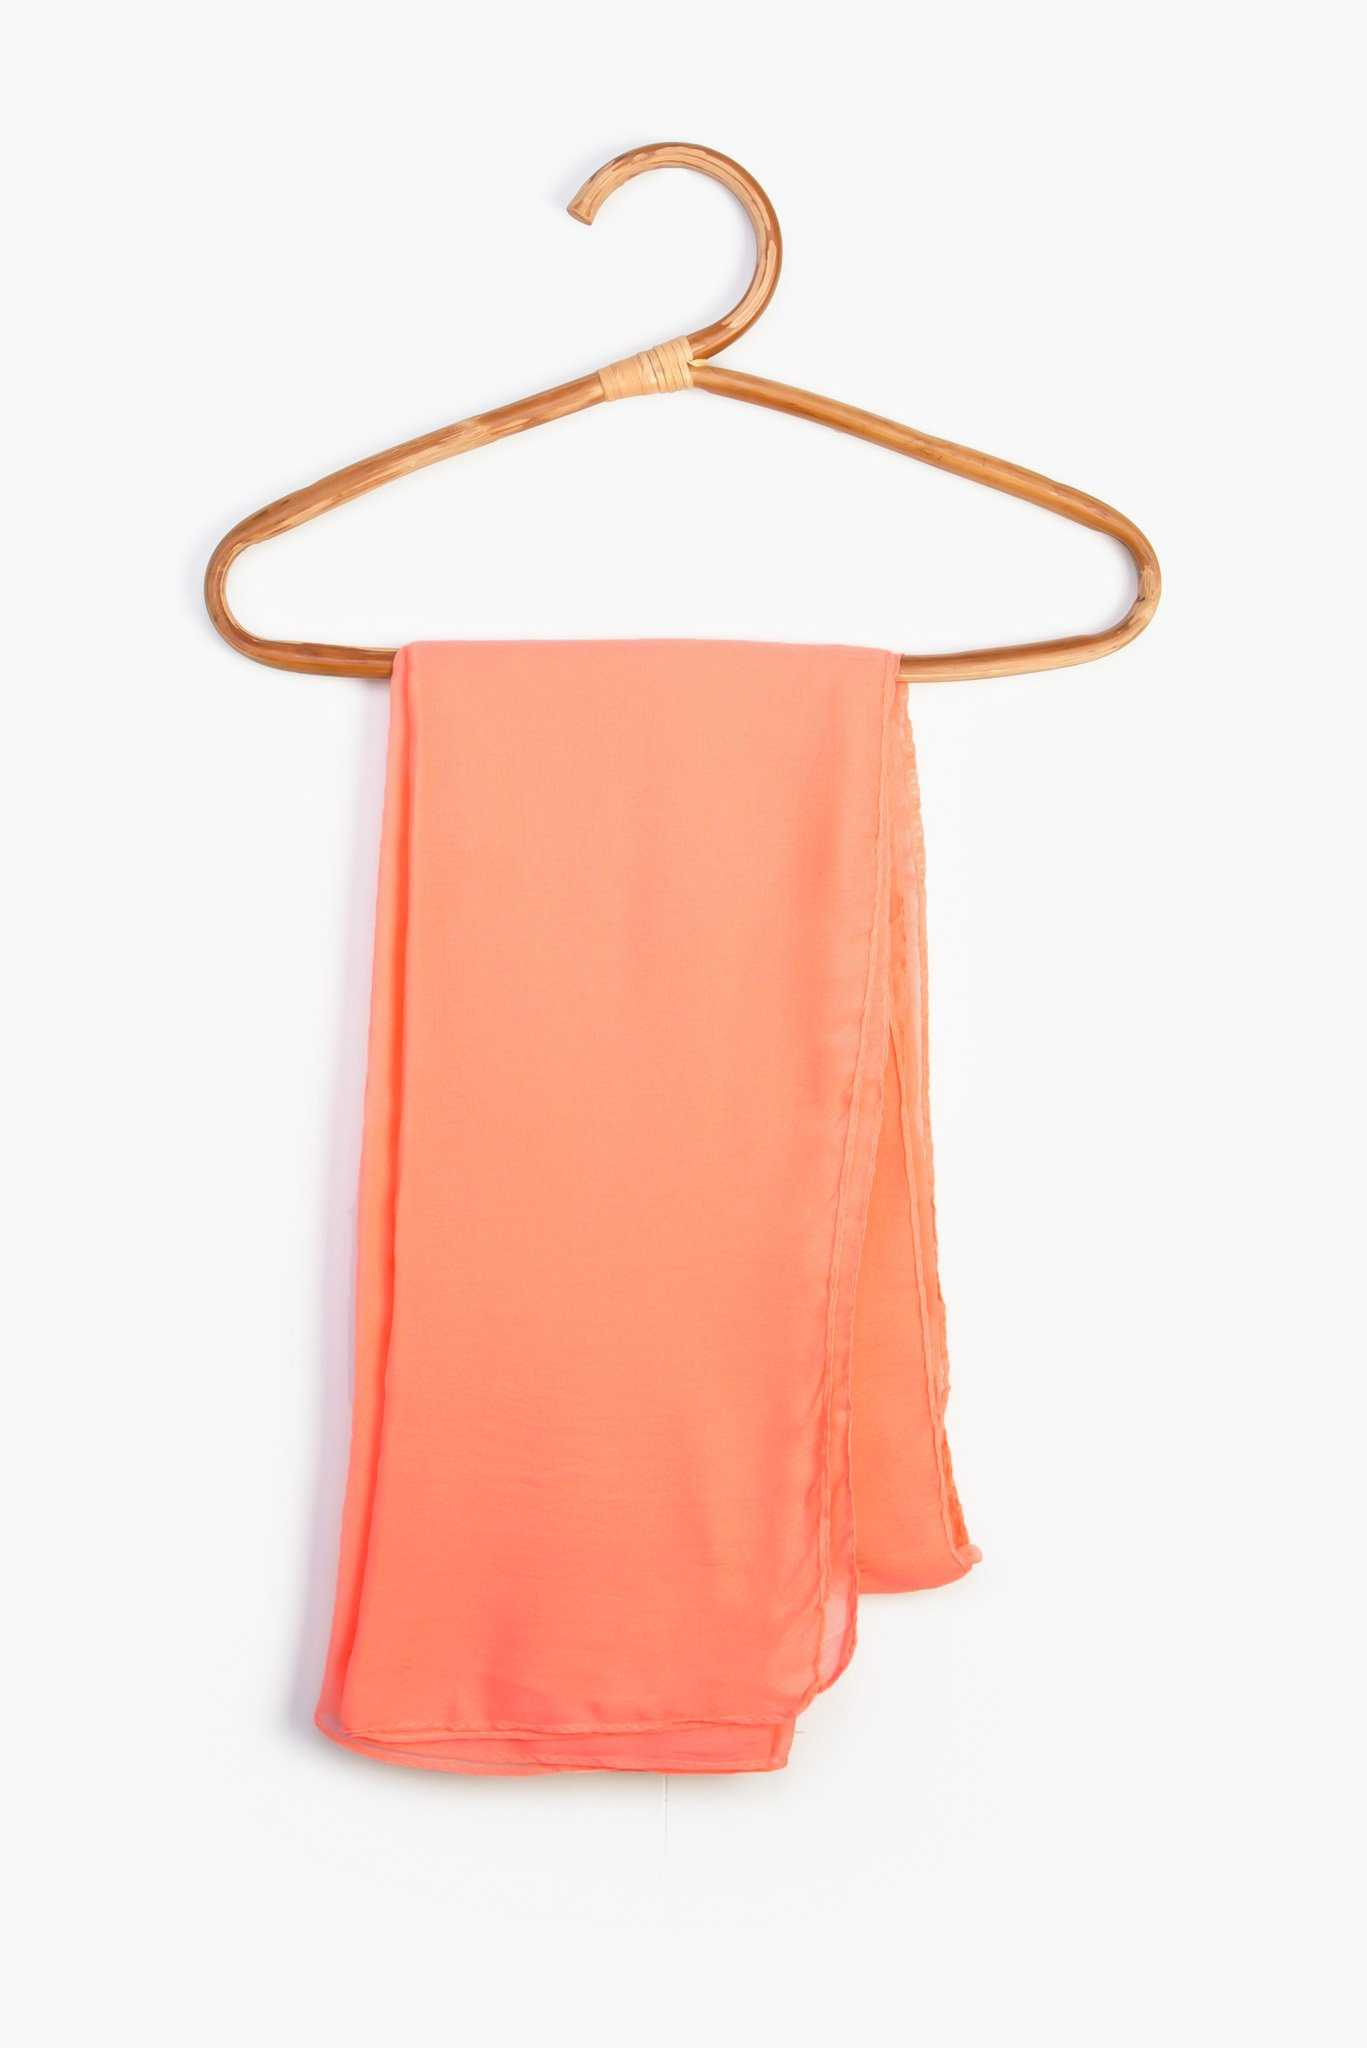 Scarf - Peach | Raw Orange